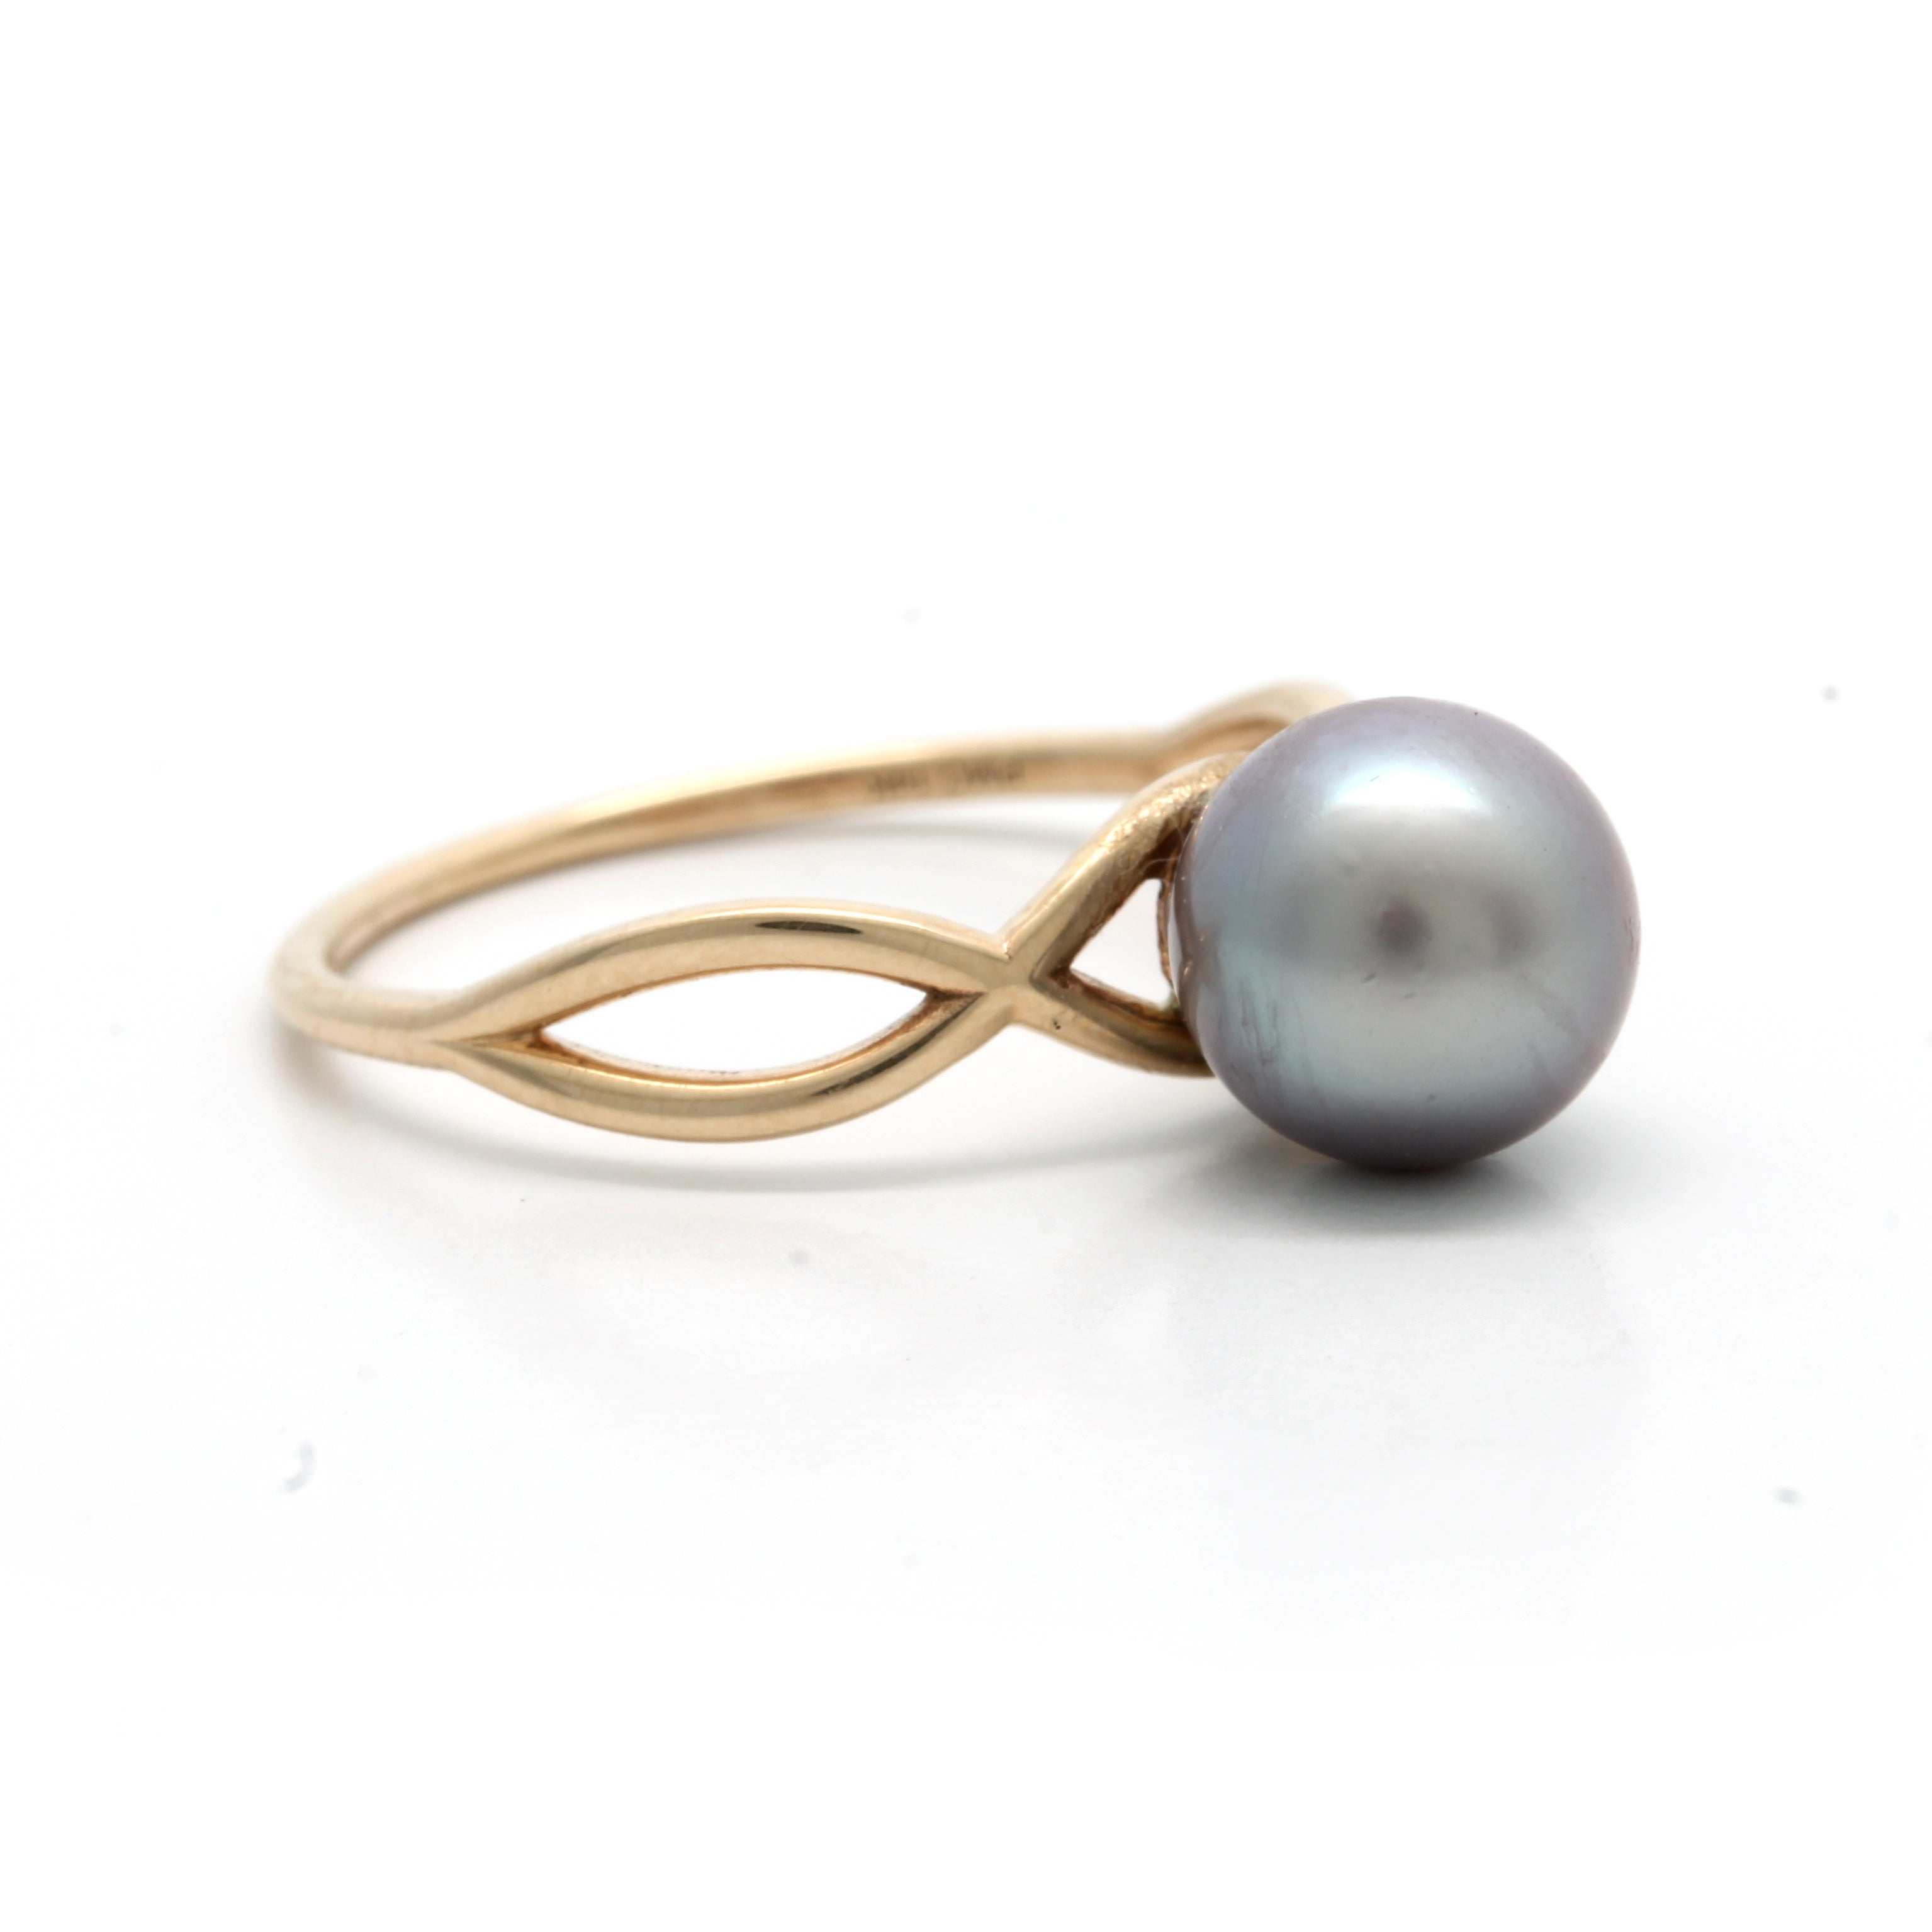 NEW 14K Yellow Gold Ring with a Cortez Pearl